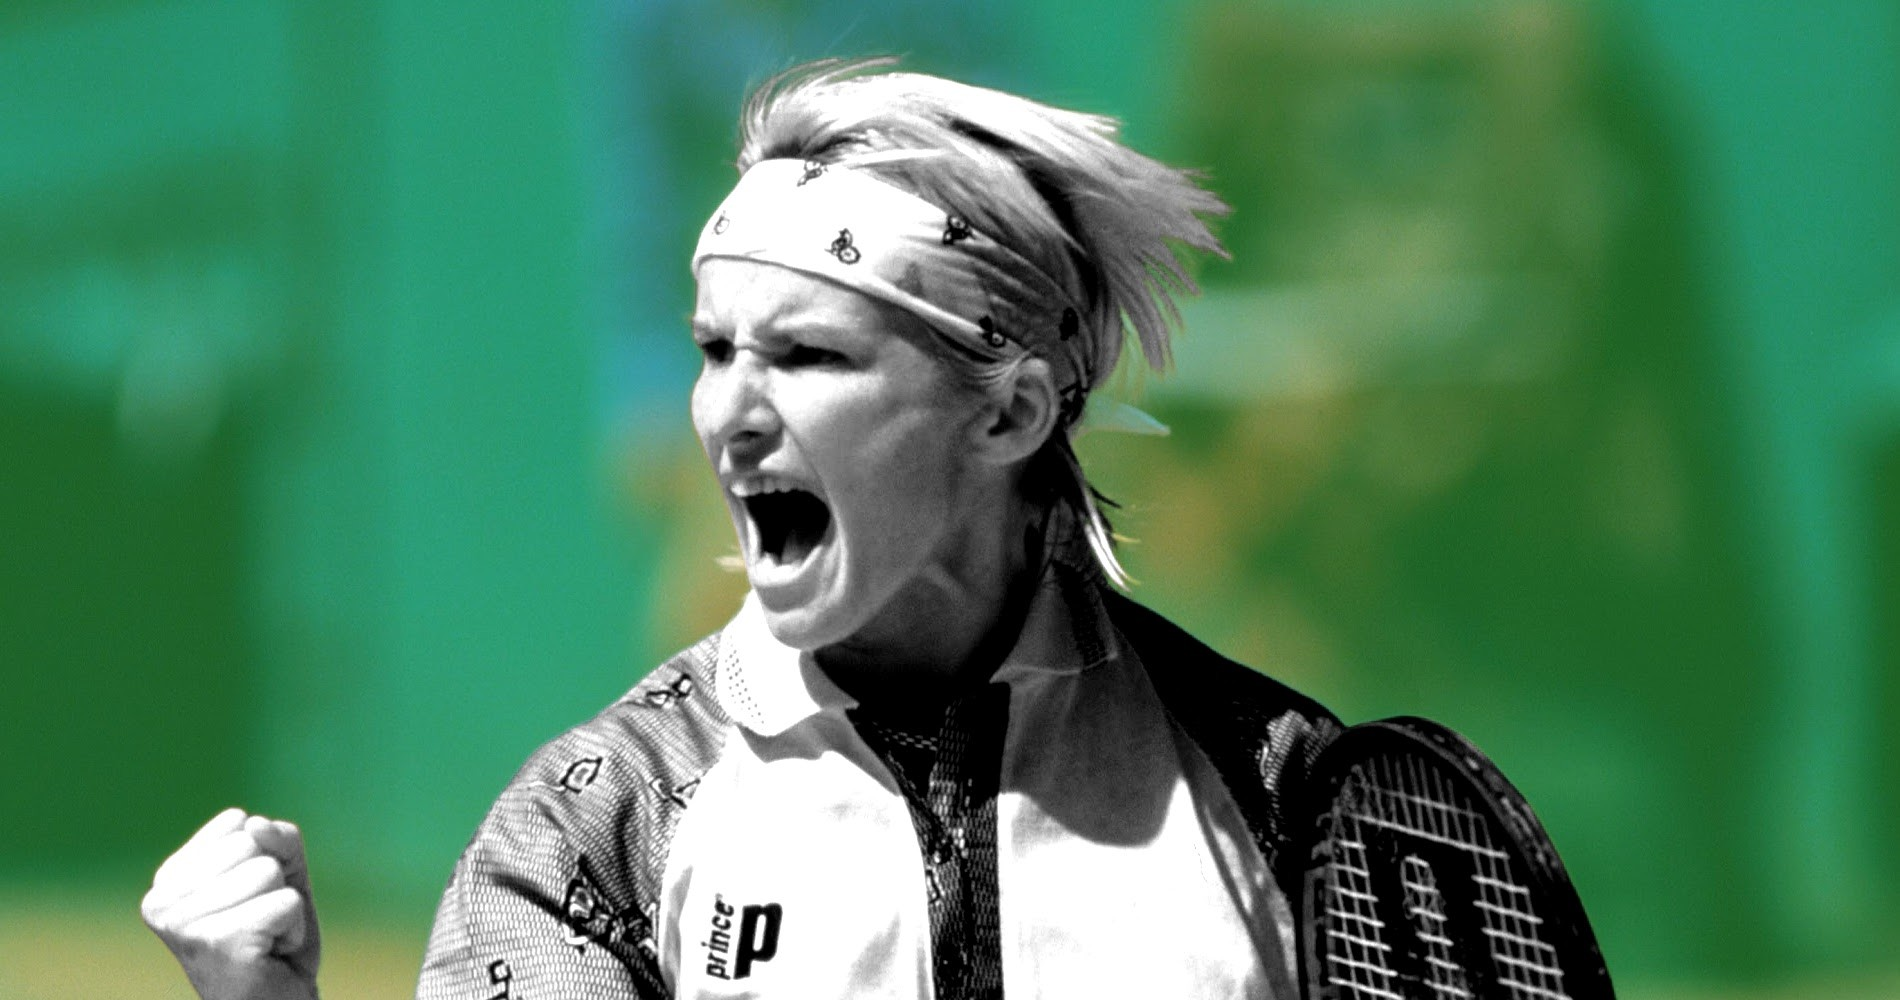 Jana Novotna, On this day